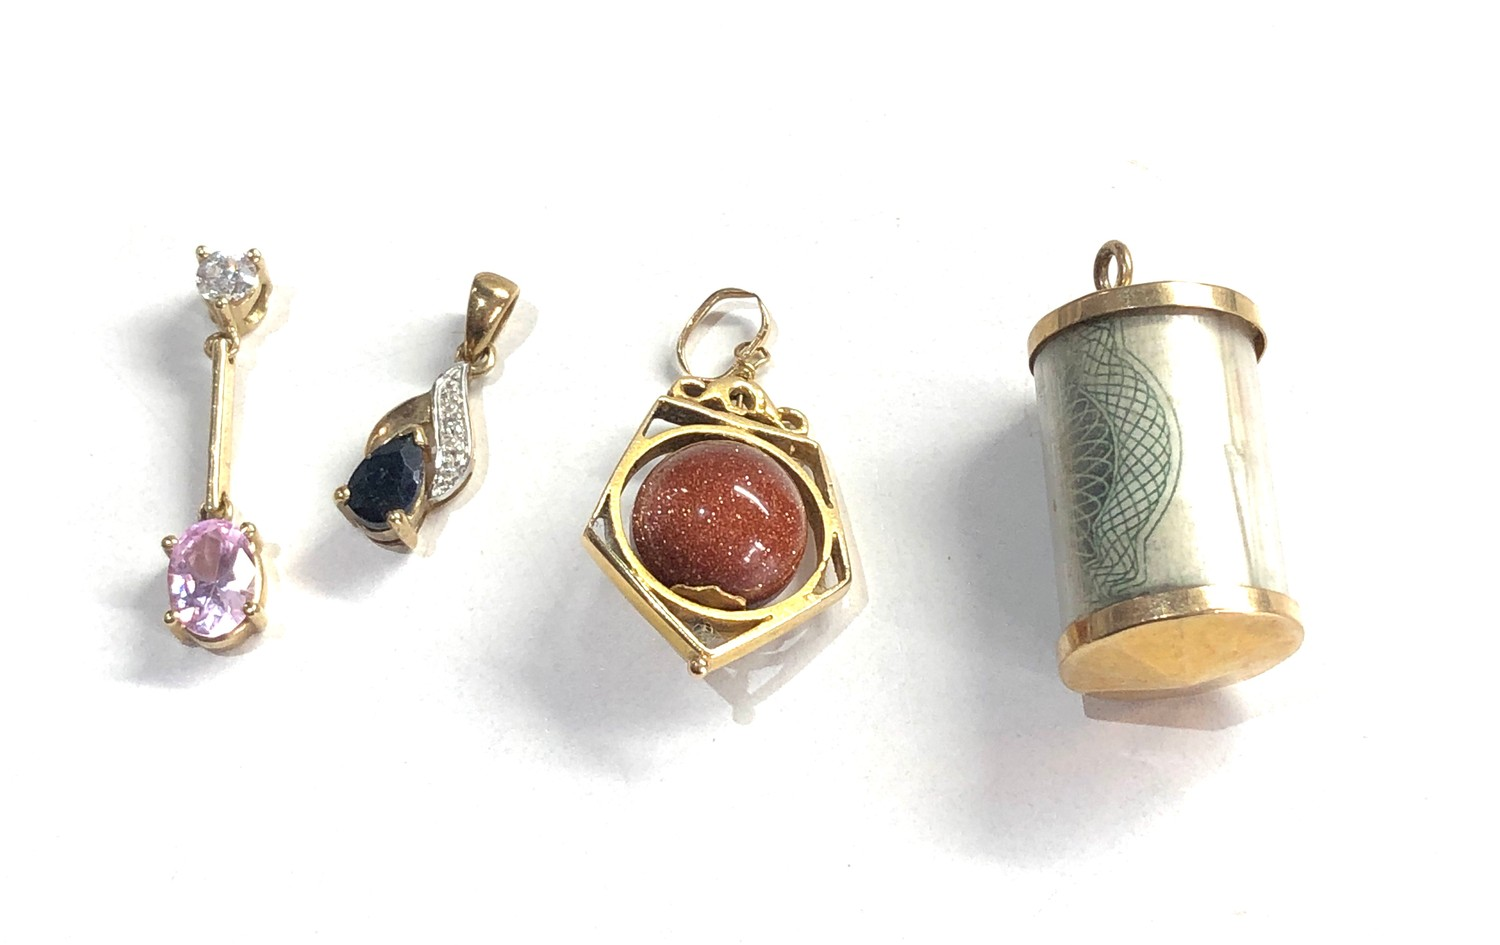 4 x 9ct gold pendants, goldstone charm and one pound note charm